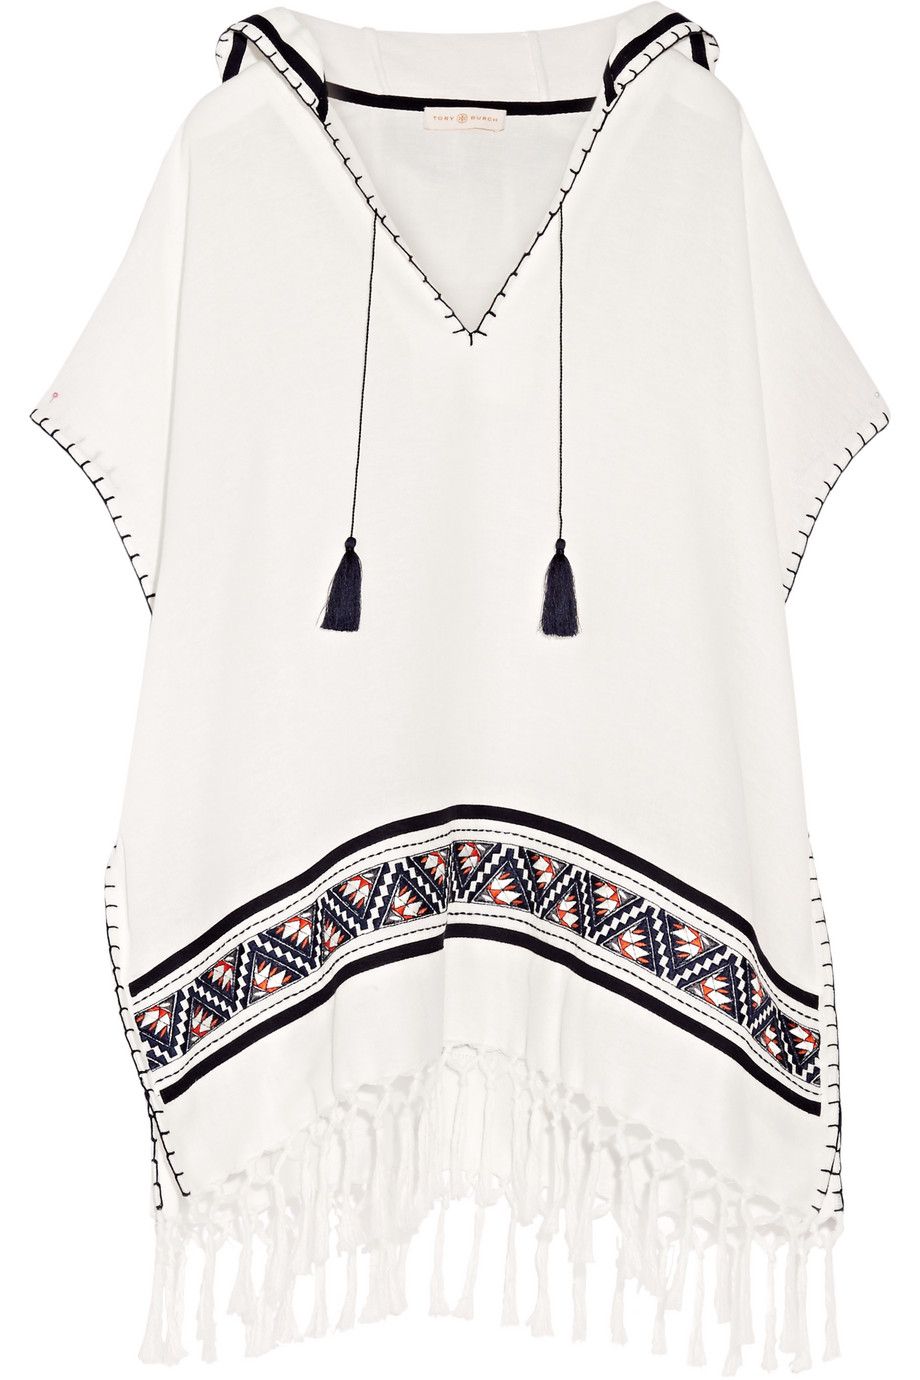 Tory Burch Fringed Embroidered Woven Cotton Poncho, Ivory, Women's, Size: XS/S